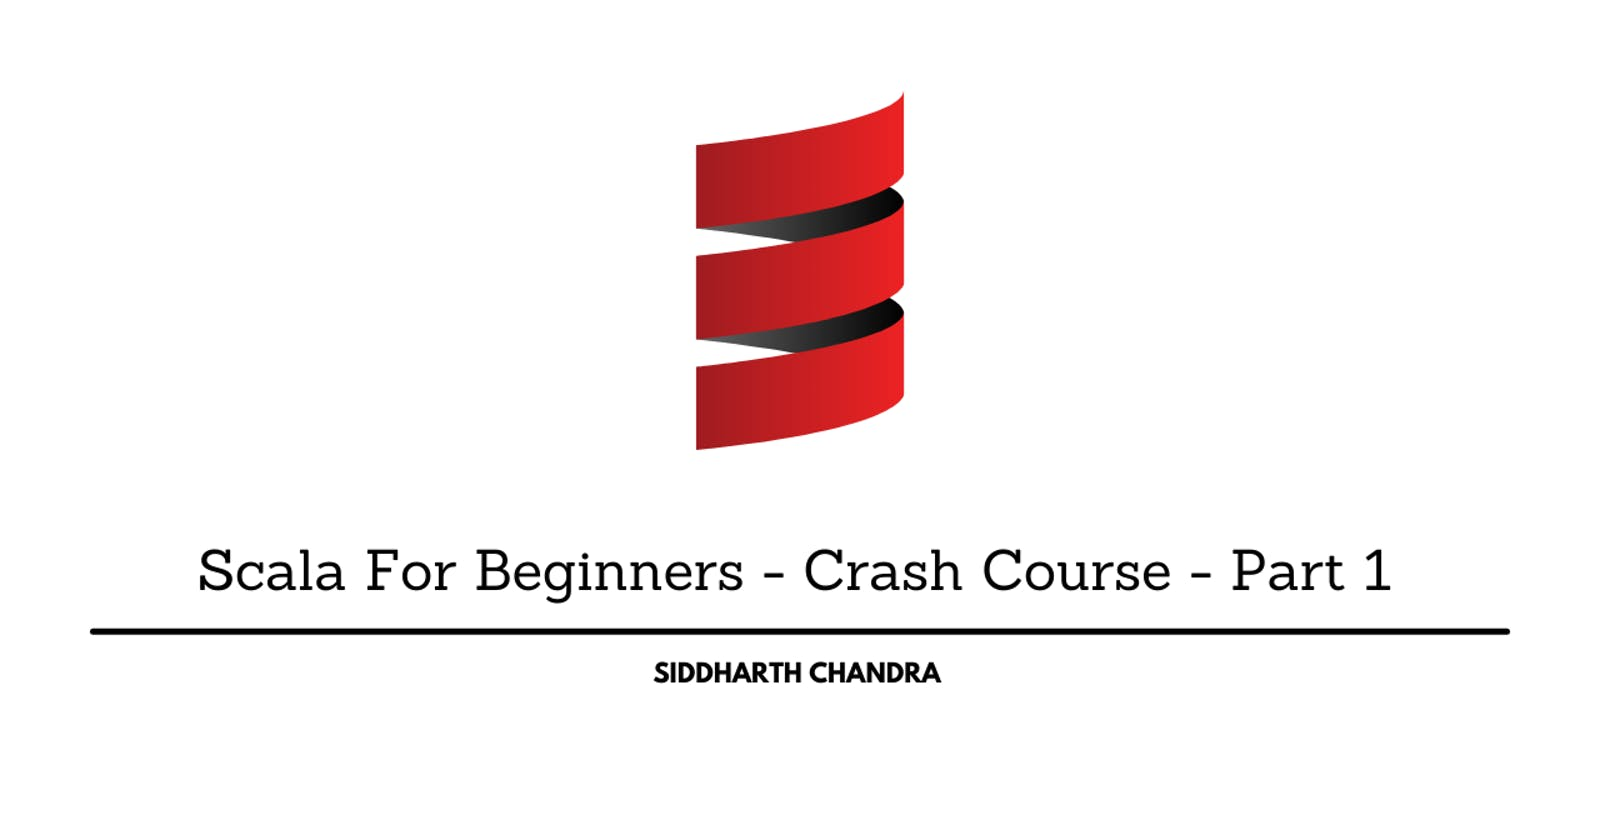 Scala For Beginners - Crash Course - Part 1